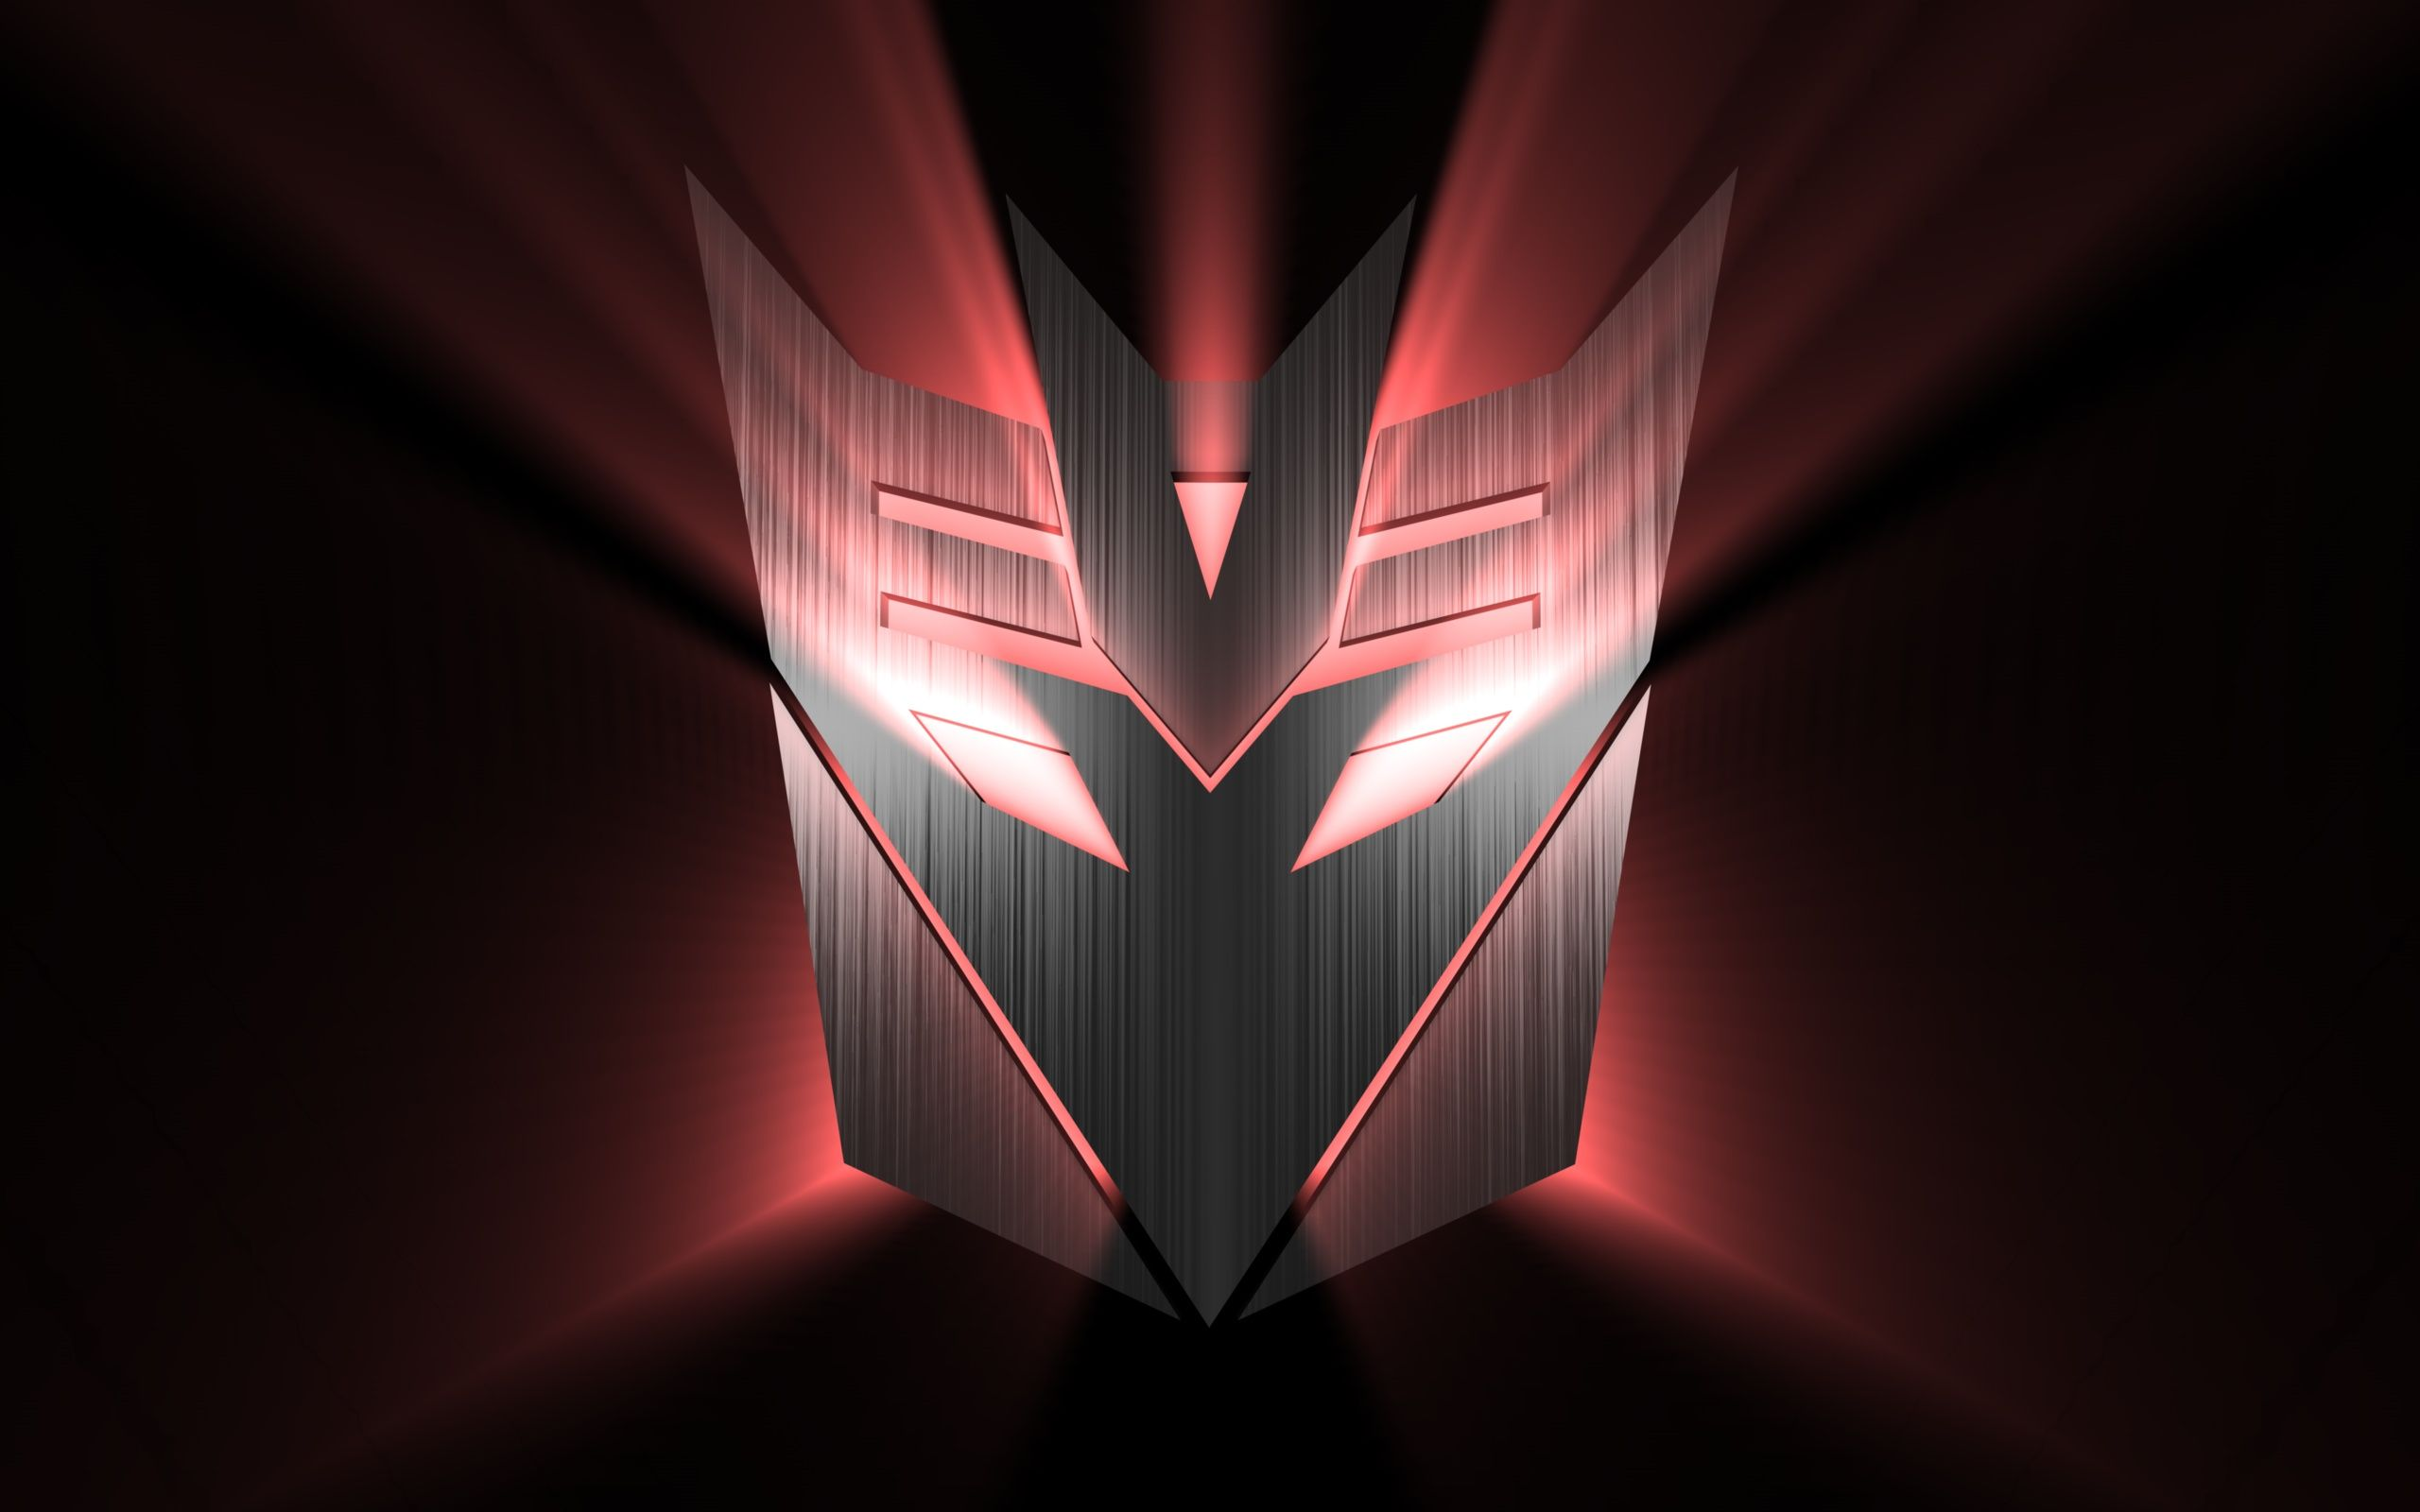 Pin By Chase Riddle On Transformers Decepticon Logo